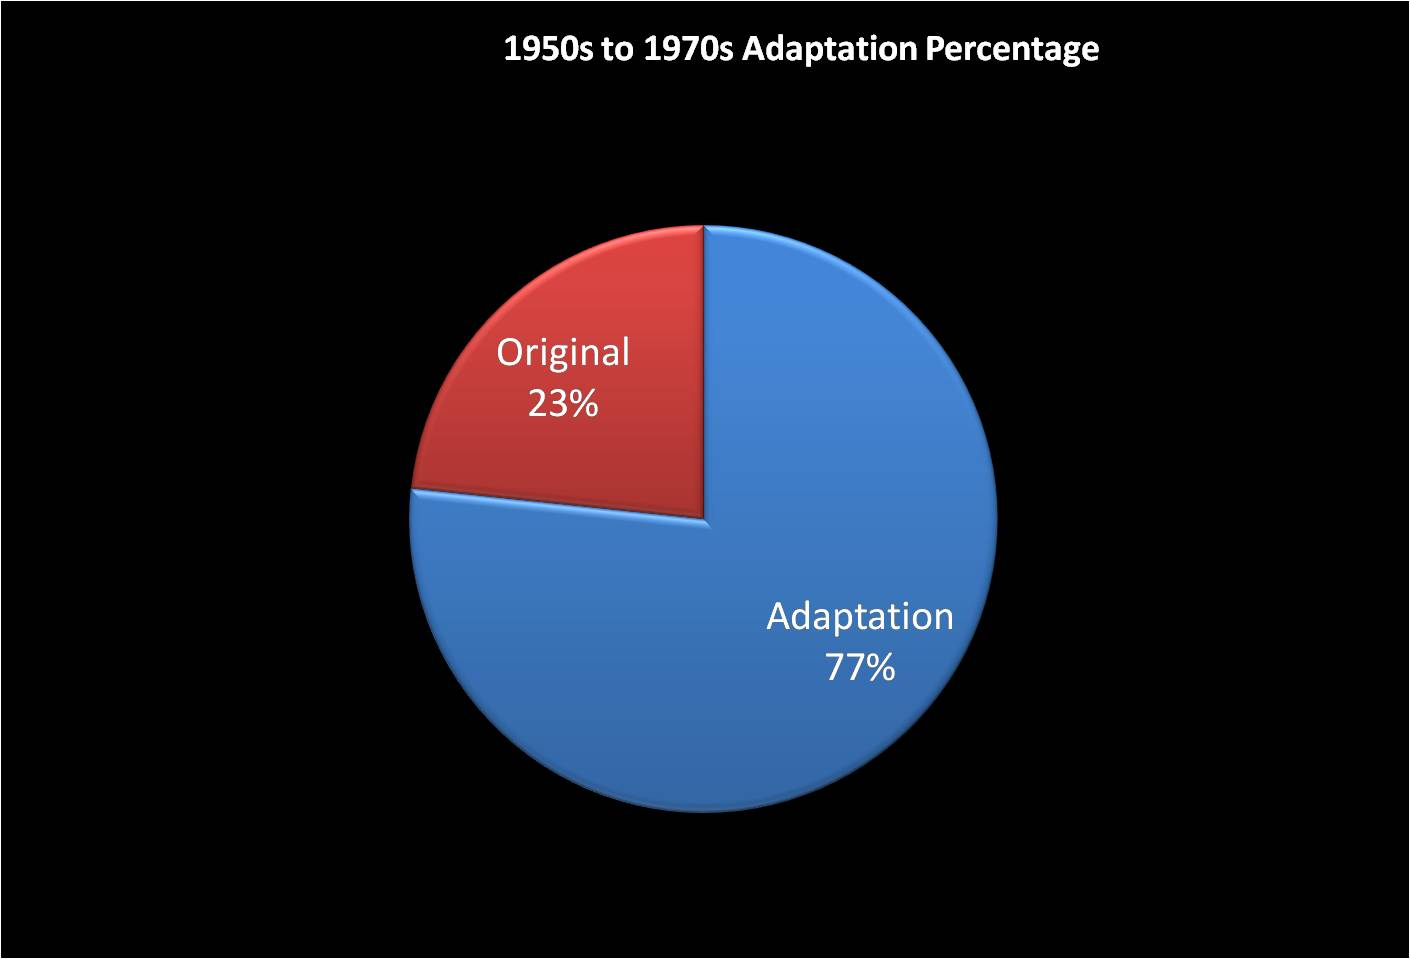 Adaptations - The 50s through 70s